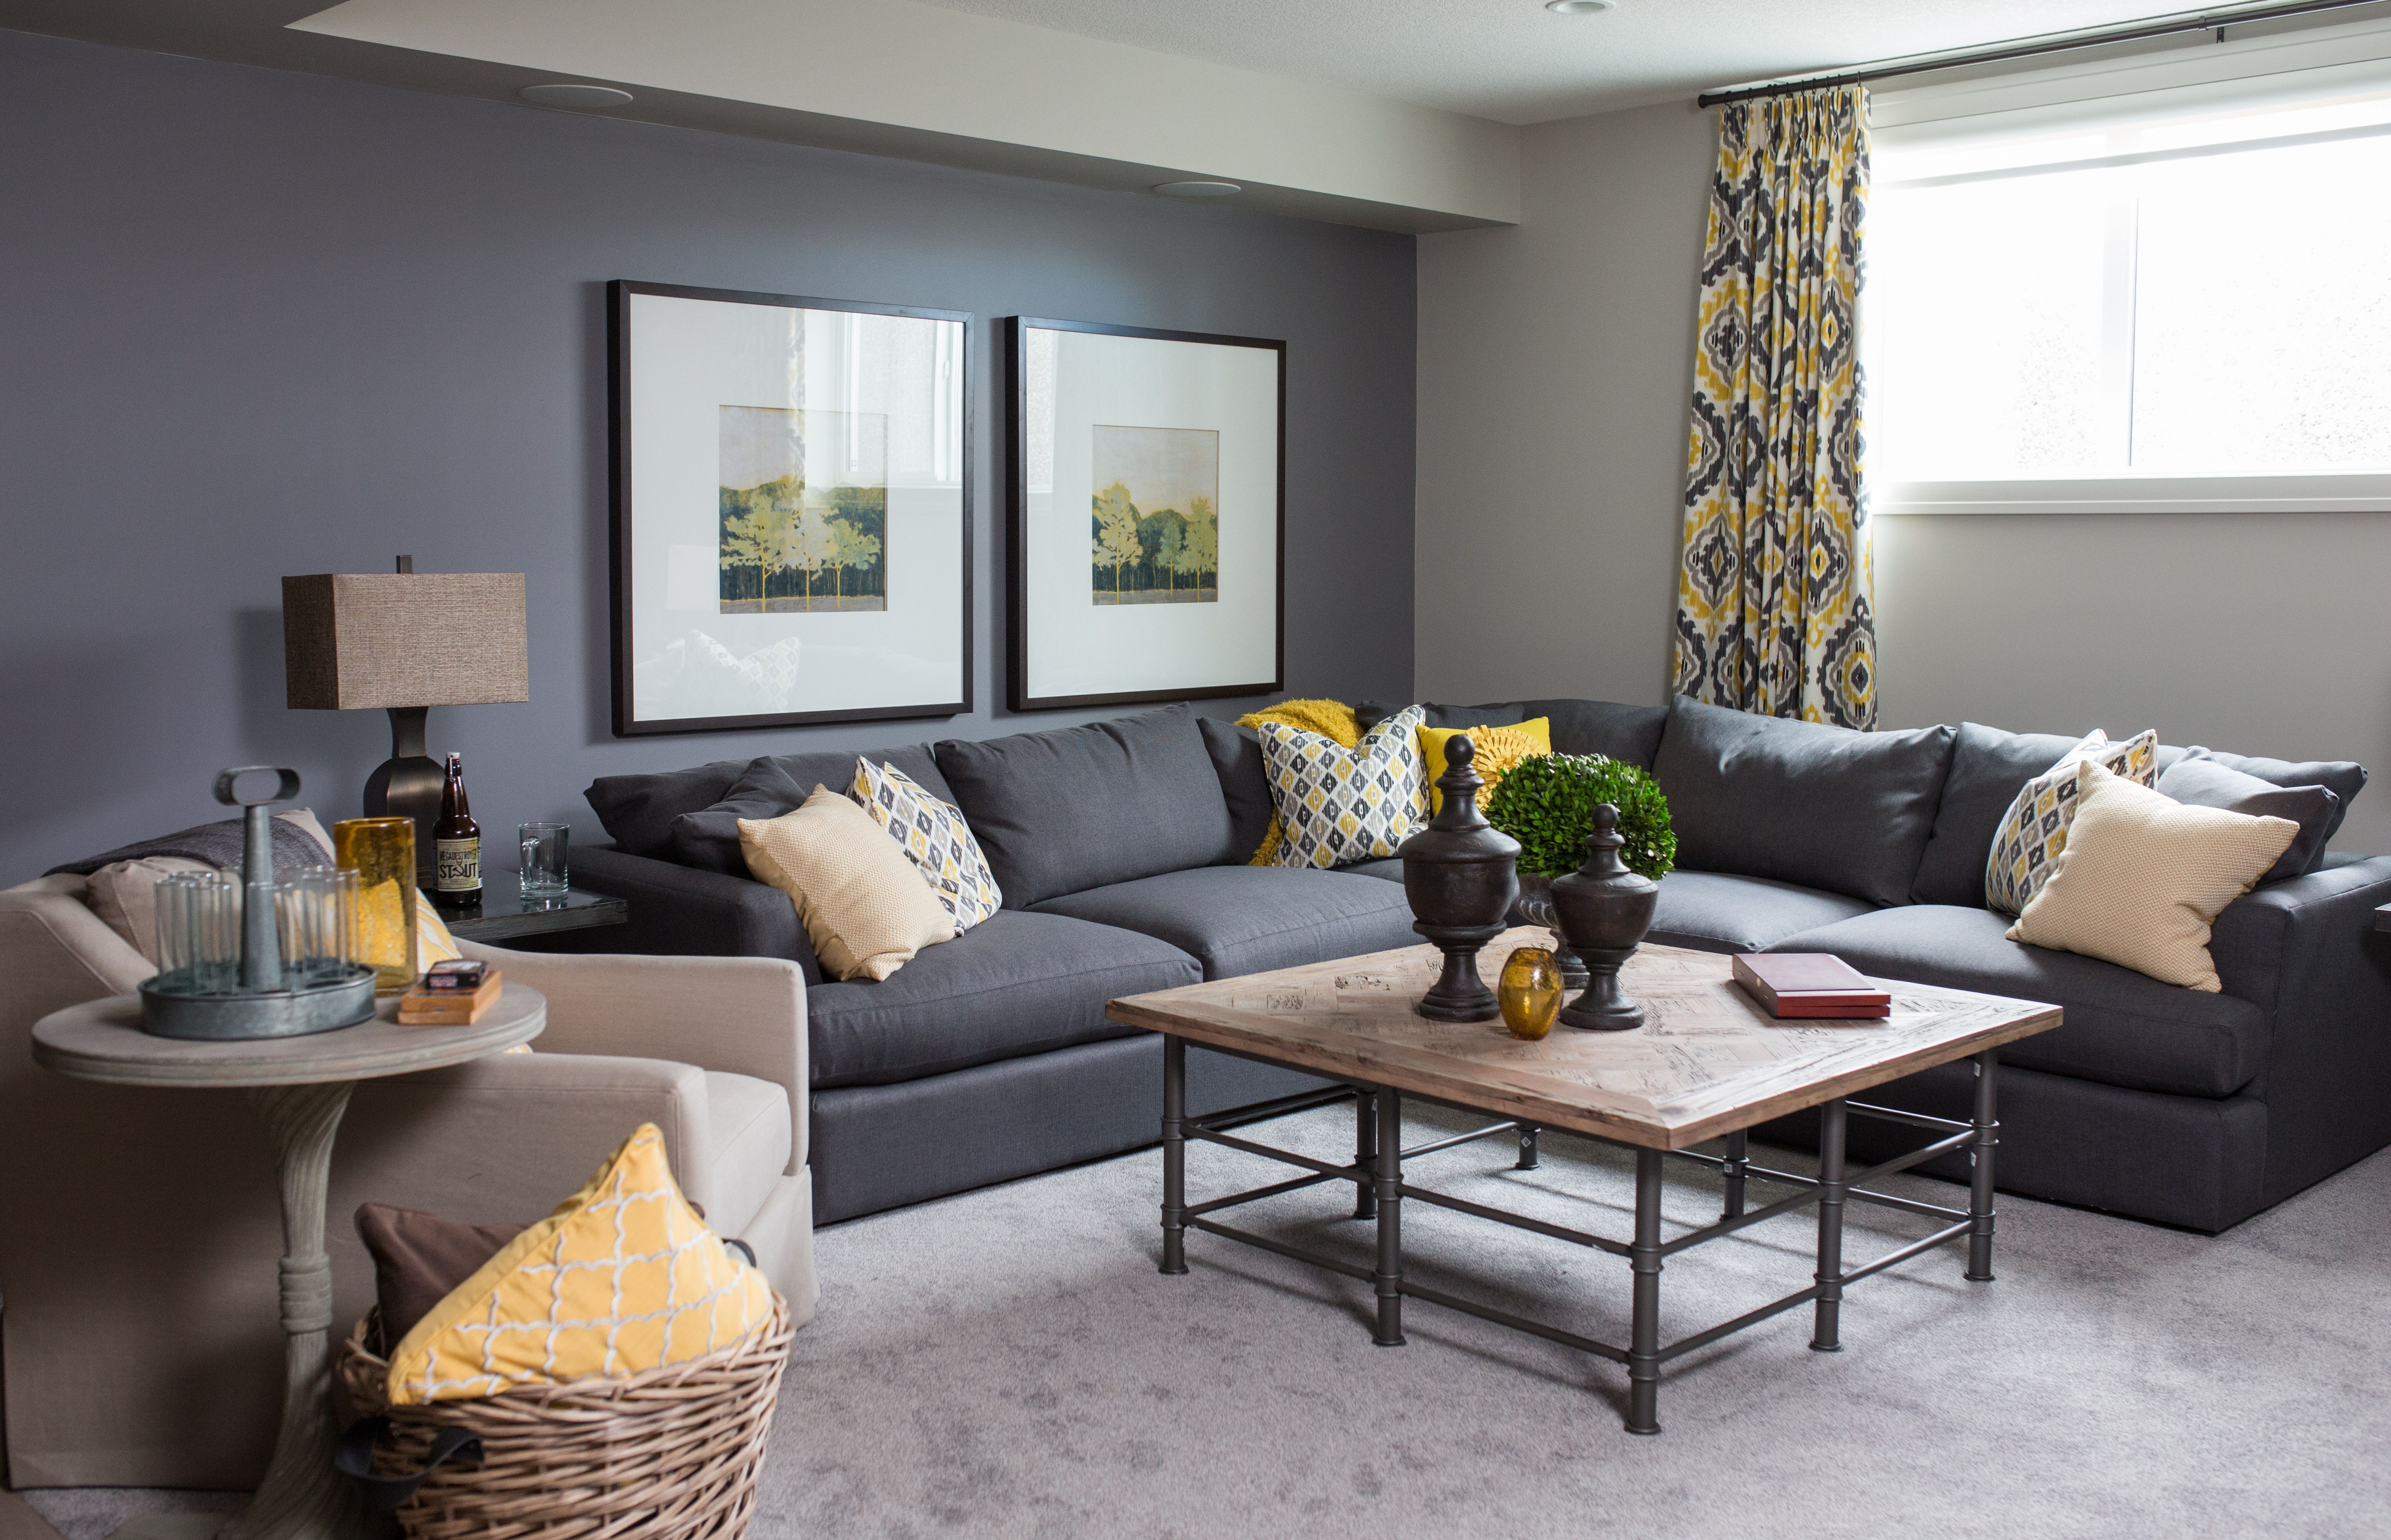 Projects Rochelle Cote The family room From the Artesia Villas